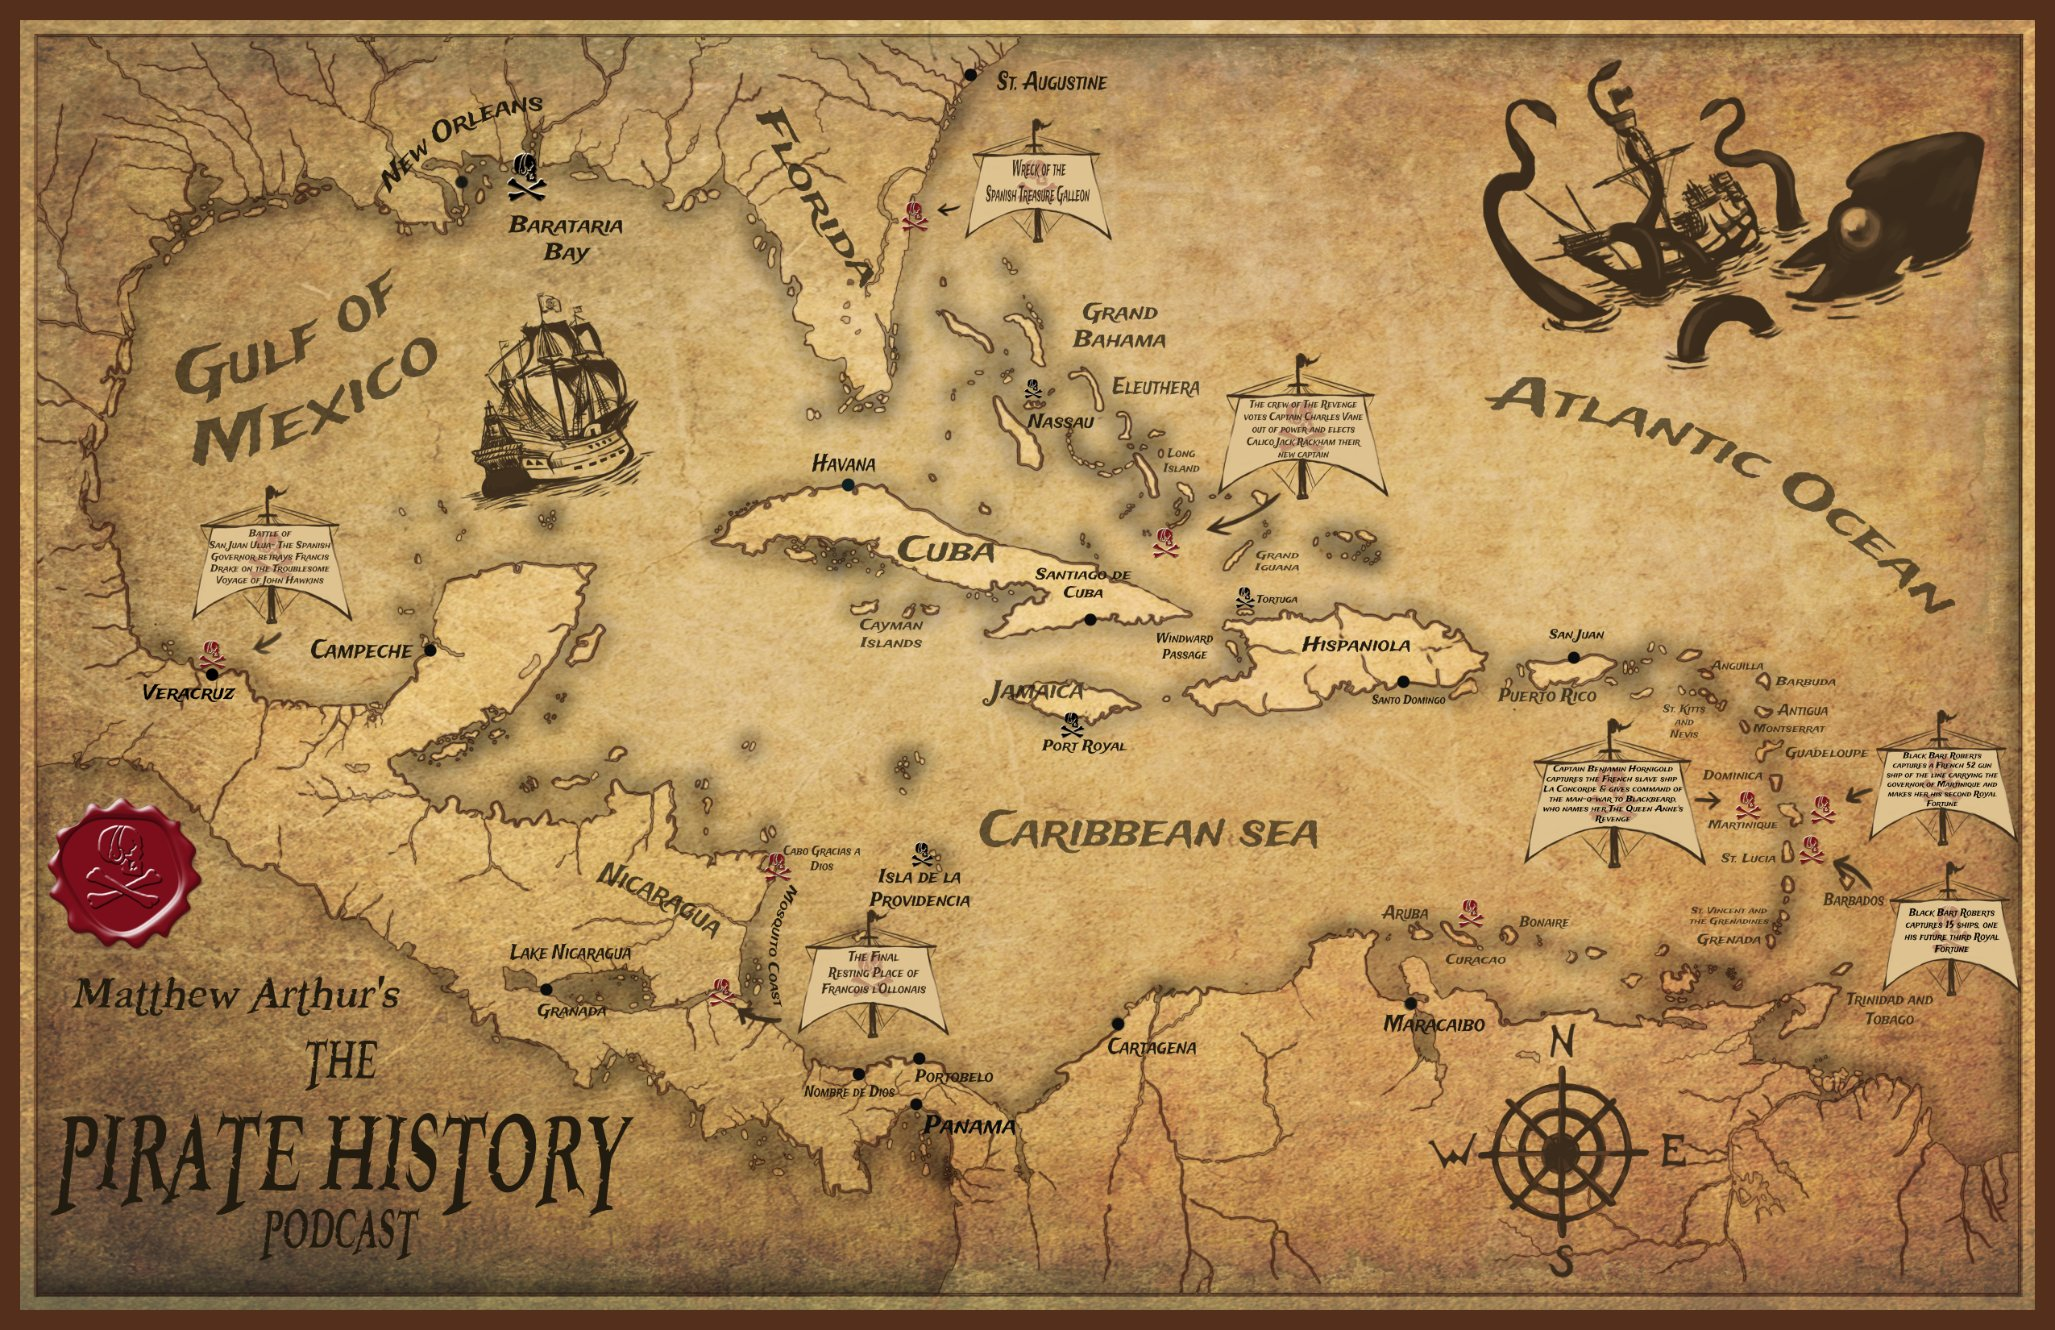 The Real Pirates Of Caribbean Cnn Travel Ship Diagram With Labels Google Search Pirate Ships